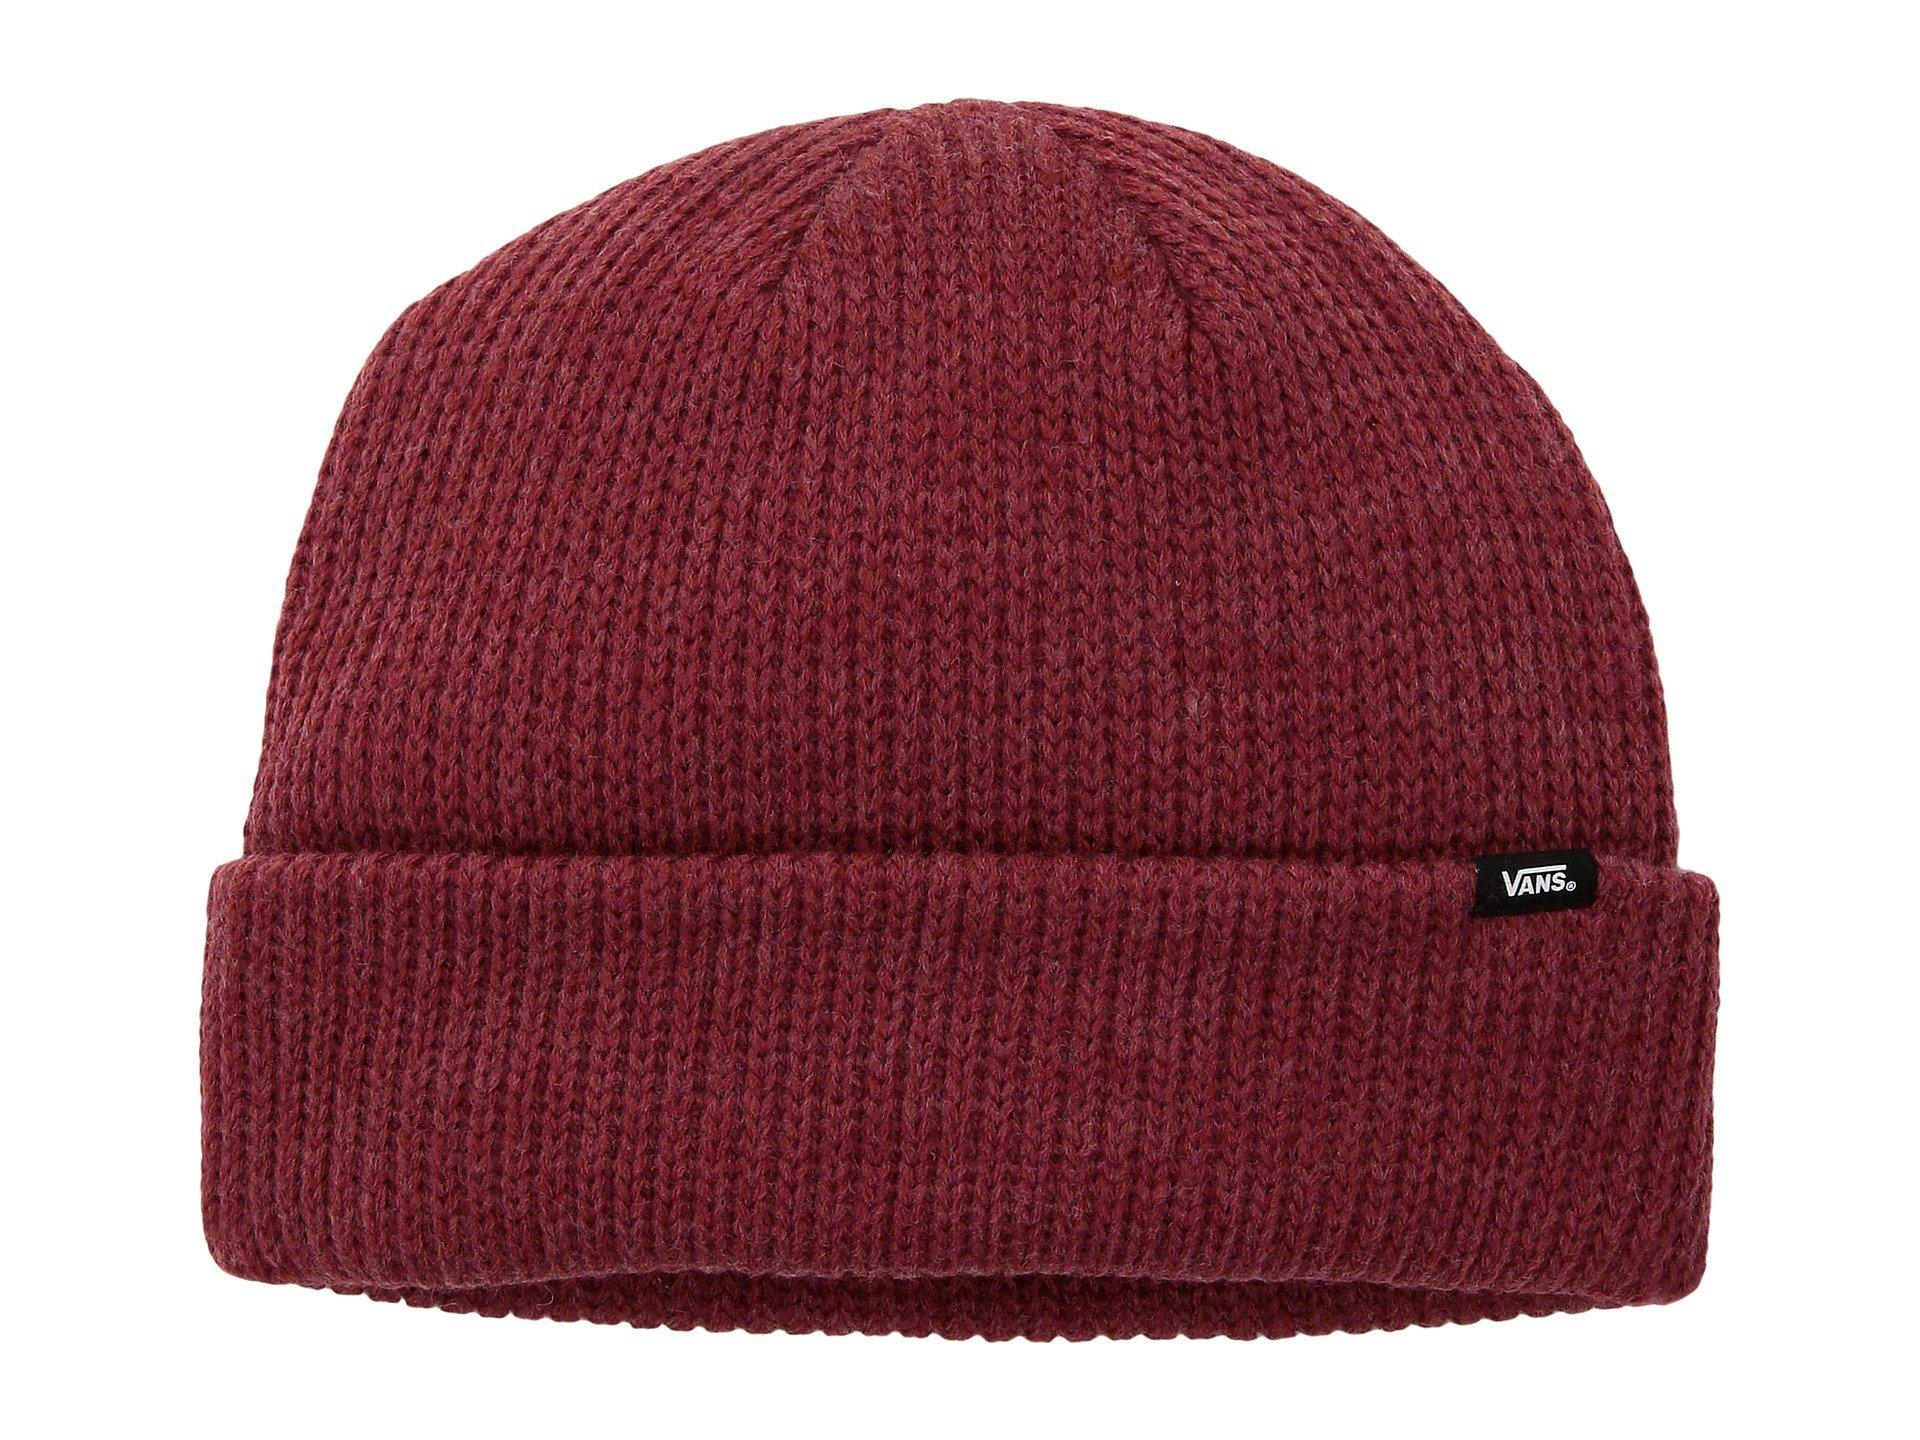 5f8d0573eec Lyst - Vans Core Basic Beanie in Red